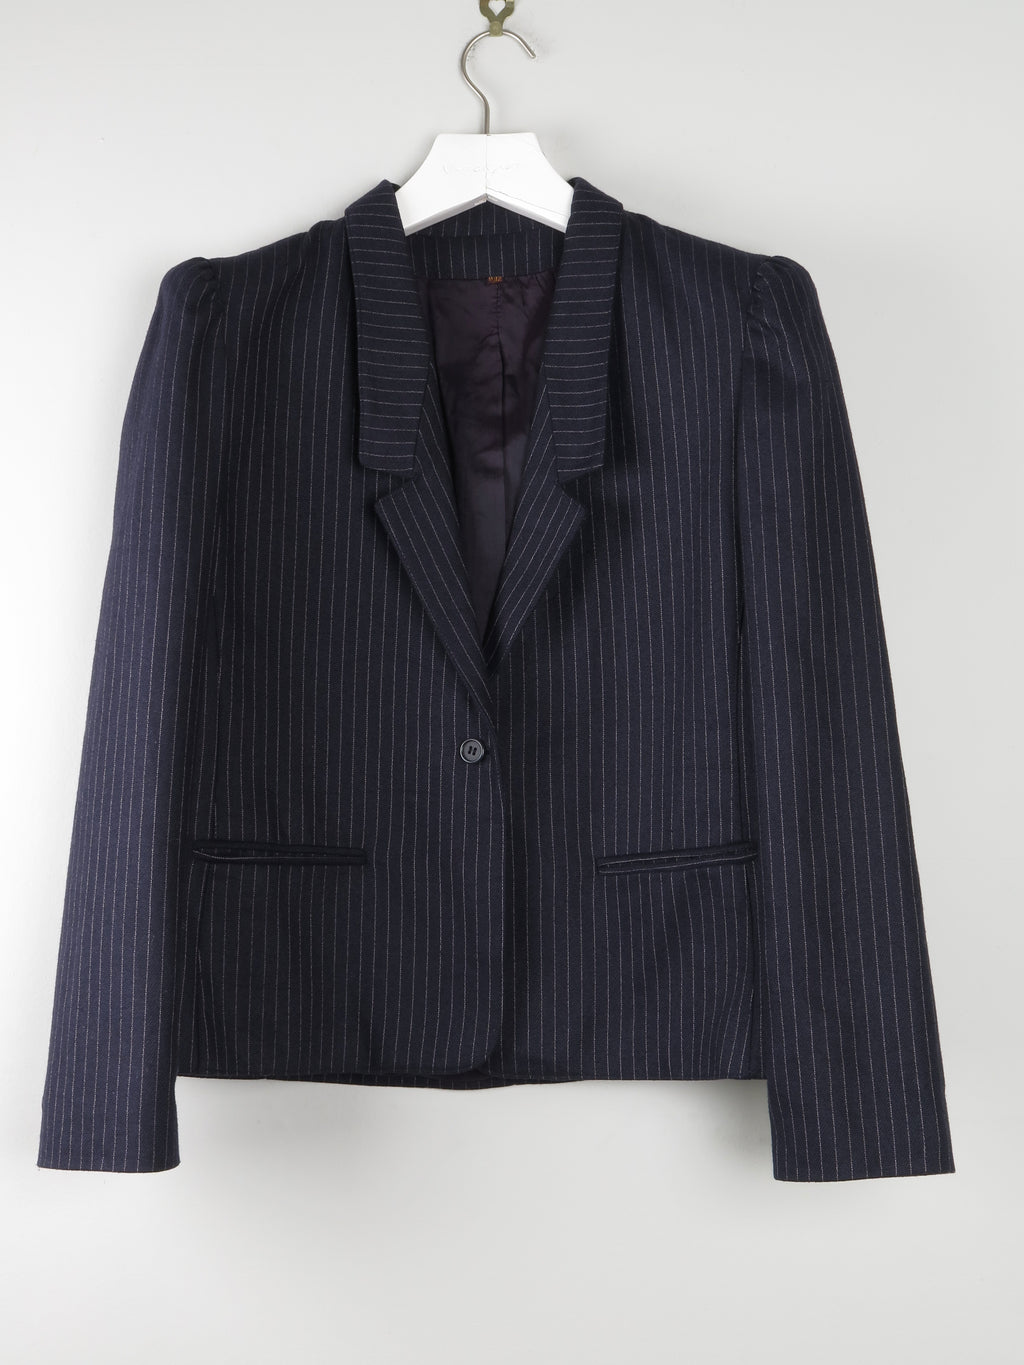 Pinstriped Navy Jacket With Puff Shoulder Details S/M